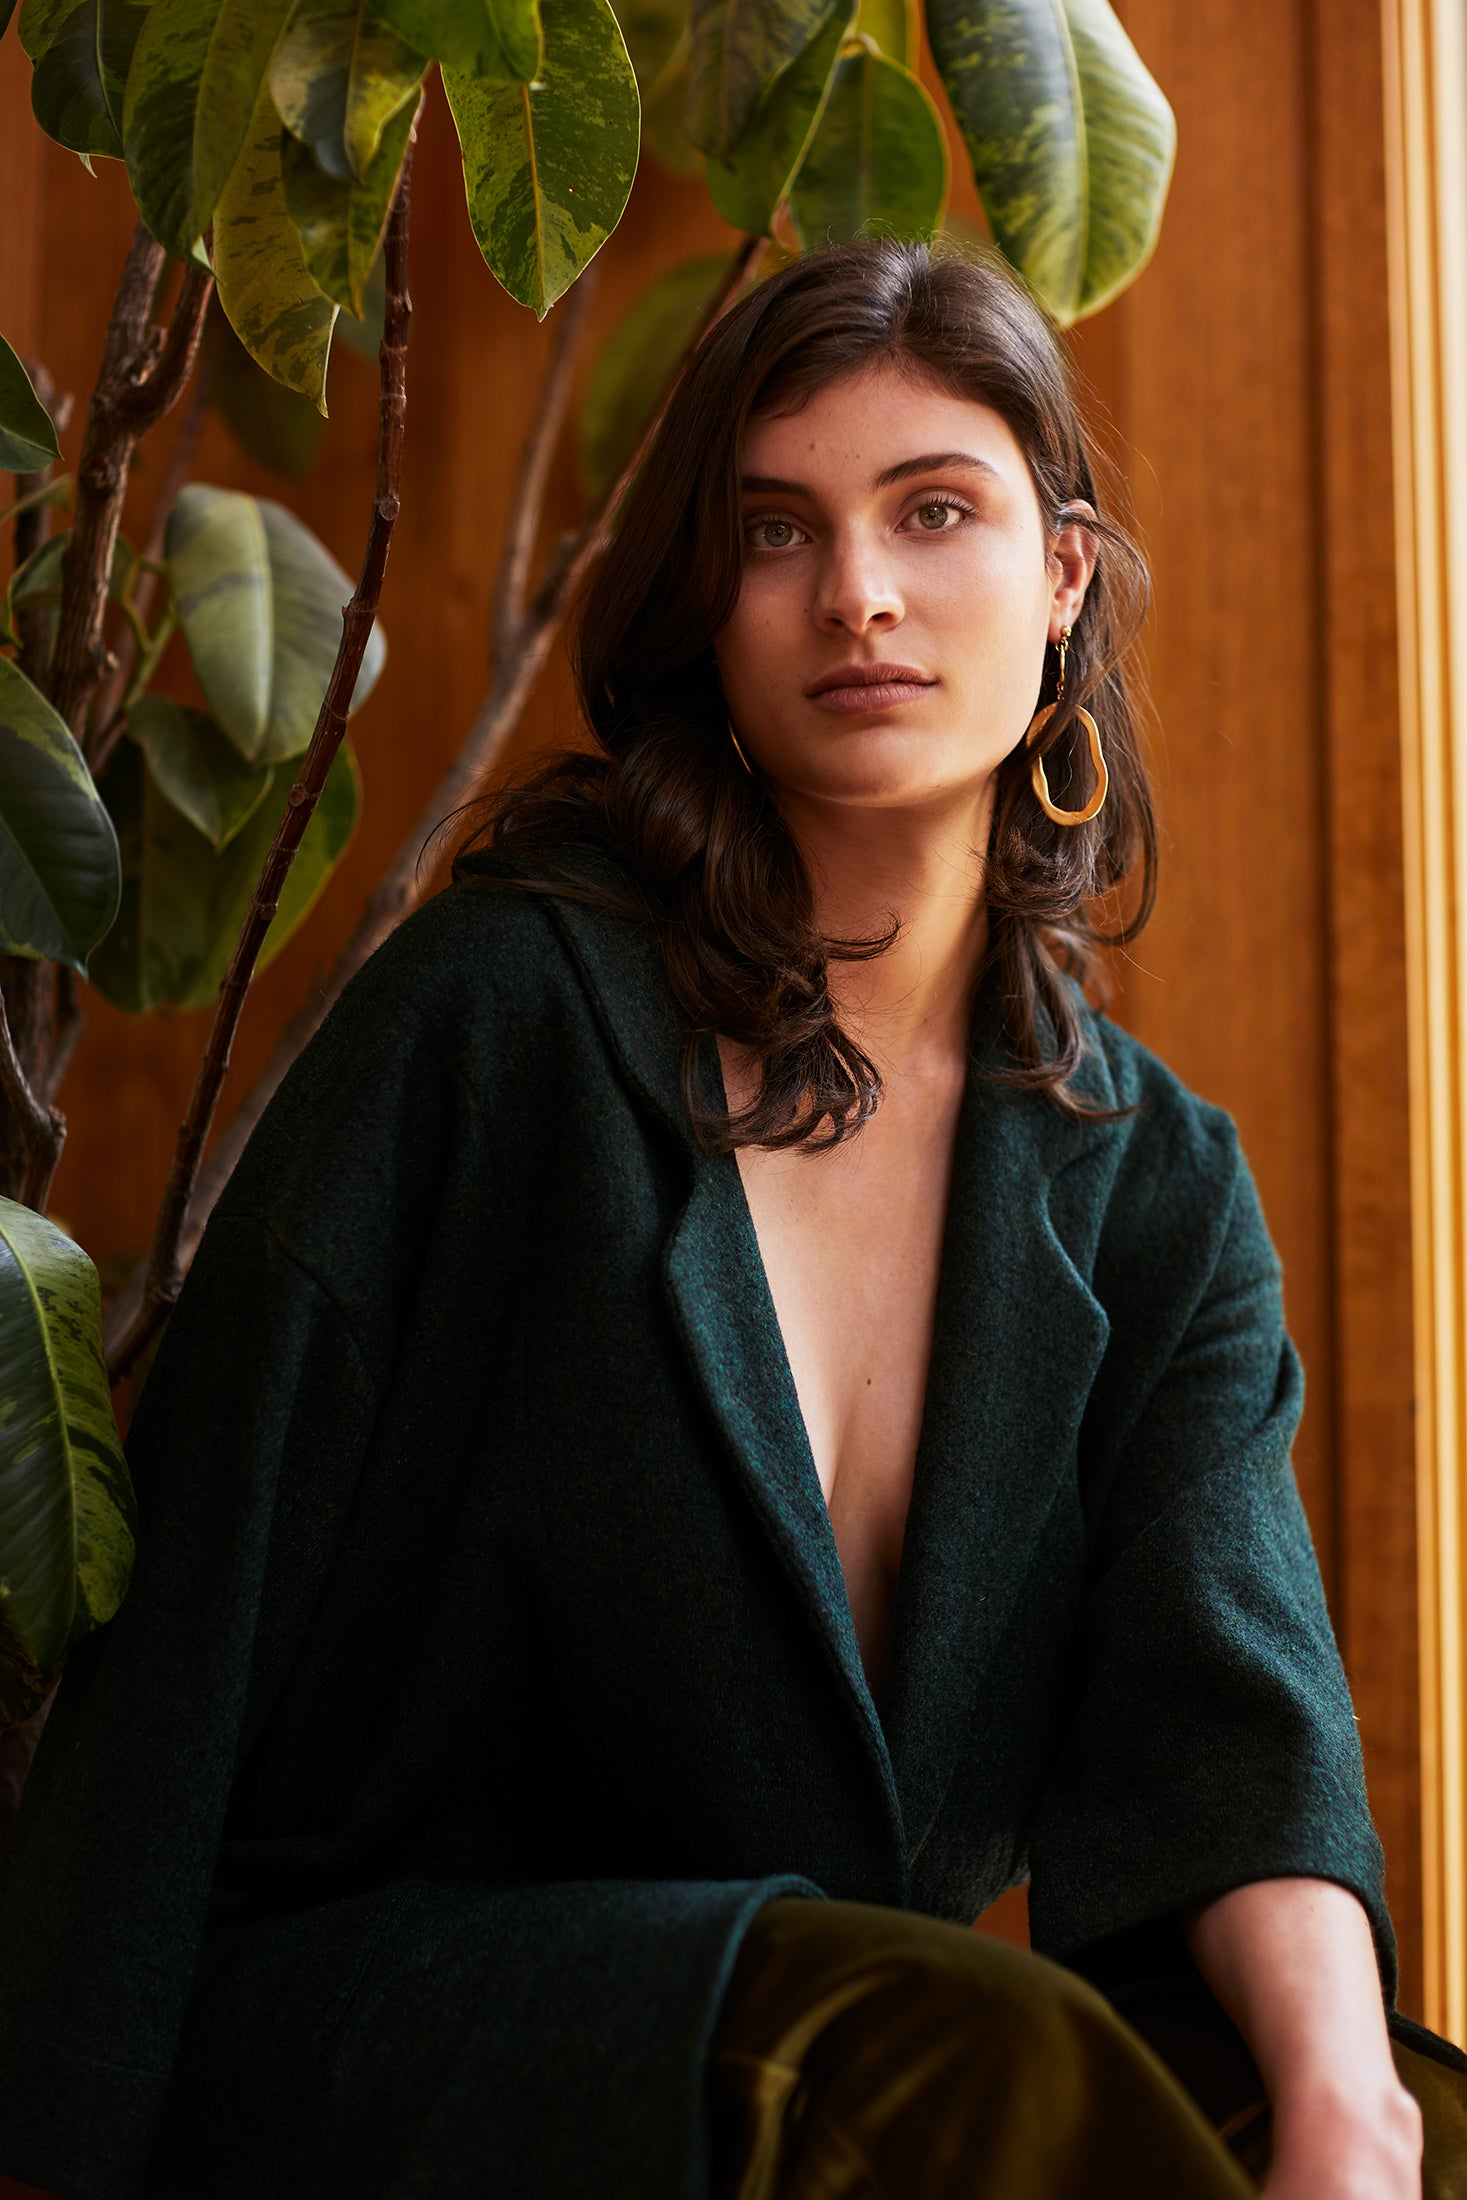 keegan AW19 Woodland Campaign Ethical Fashion Made in Melbourne Australia Green Wool Jacket